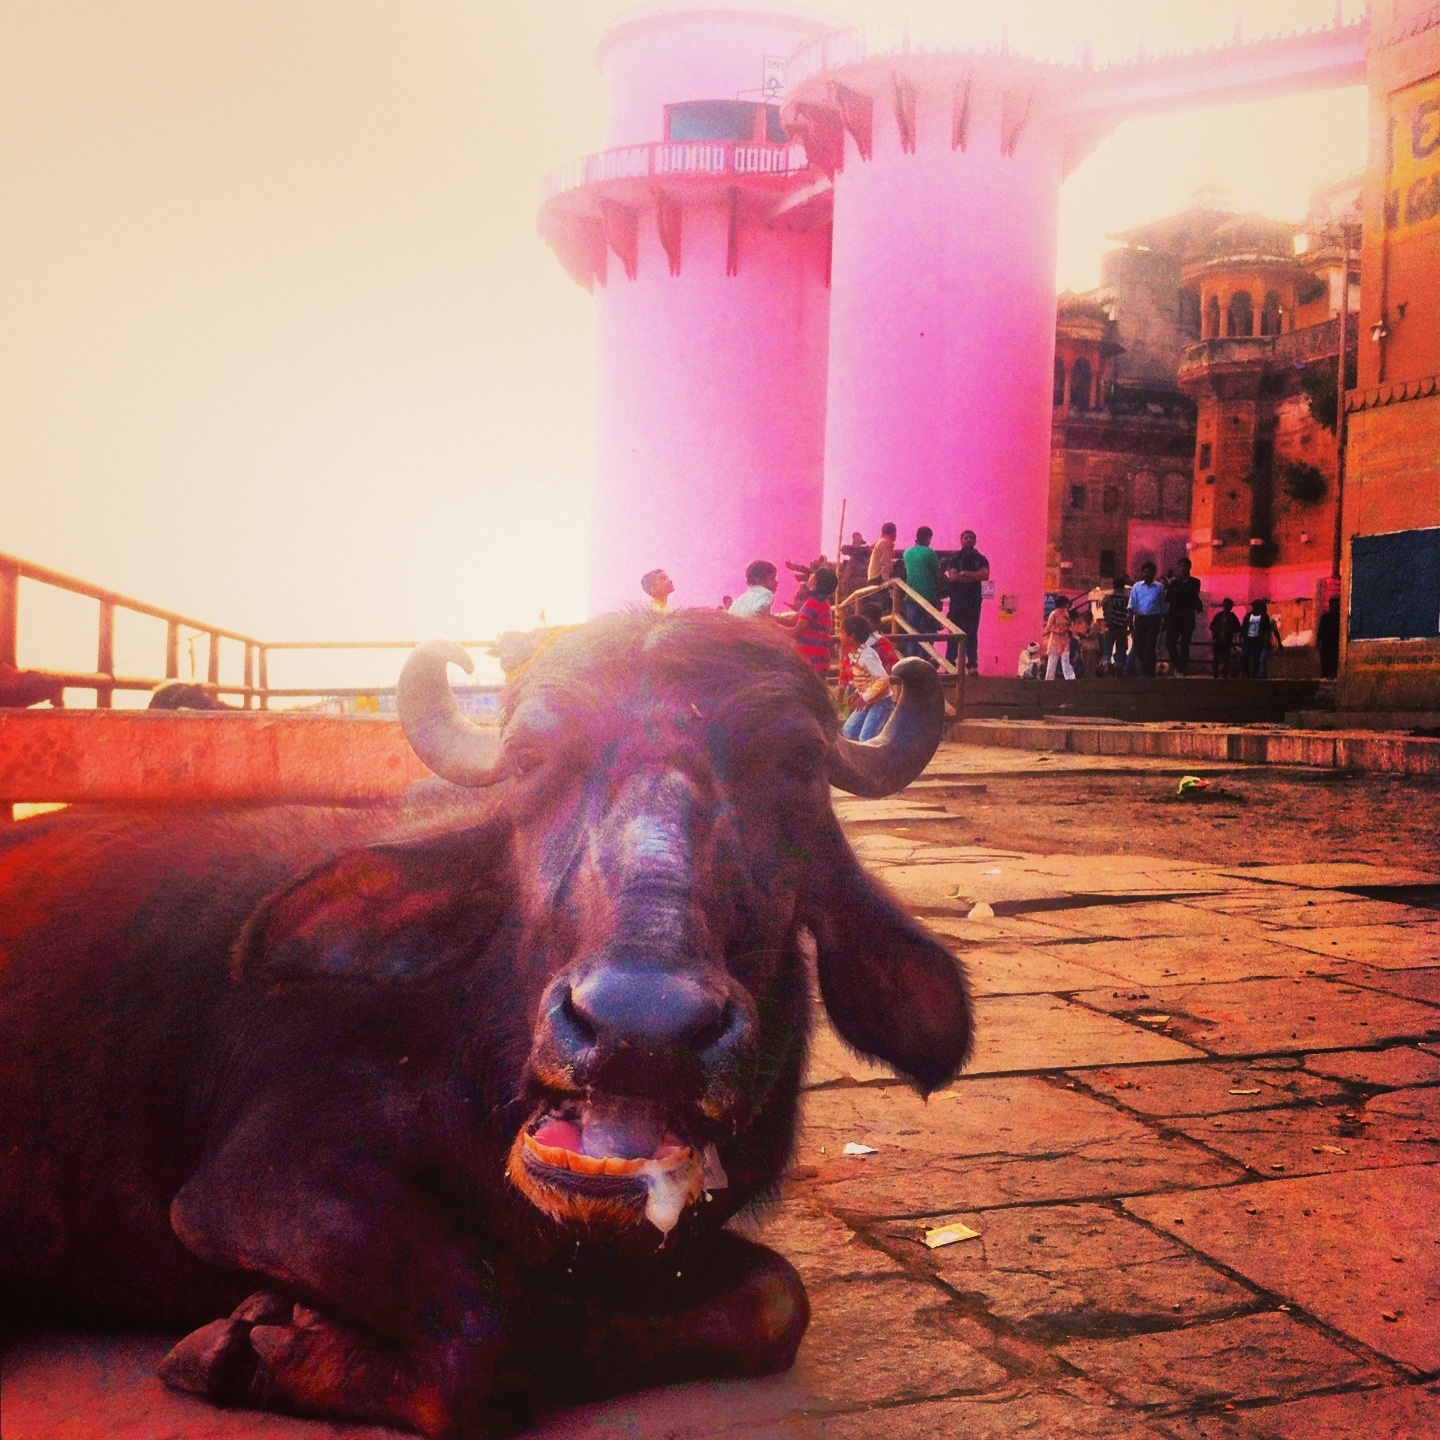 One of many cows, roaming the streets of Varanasi